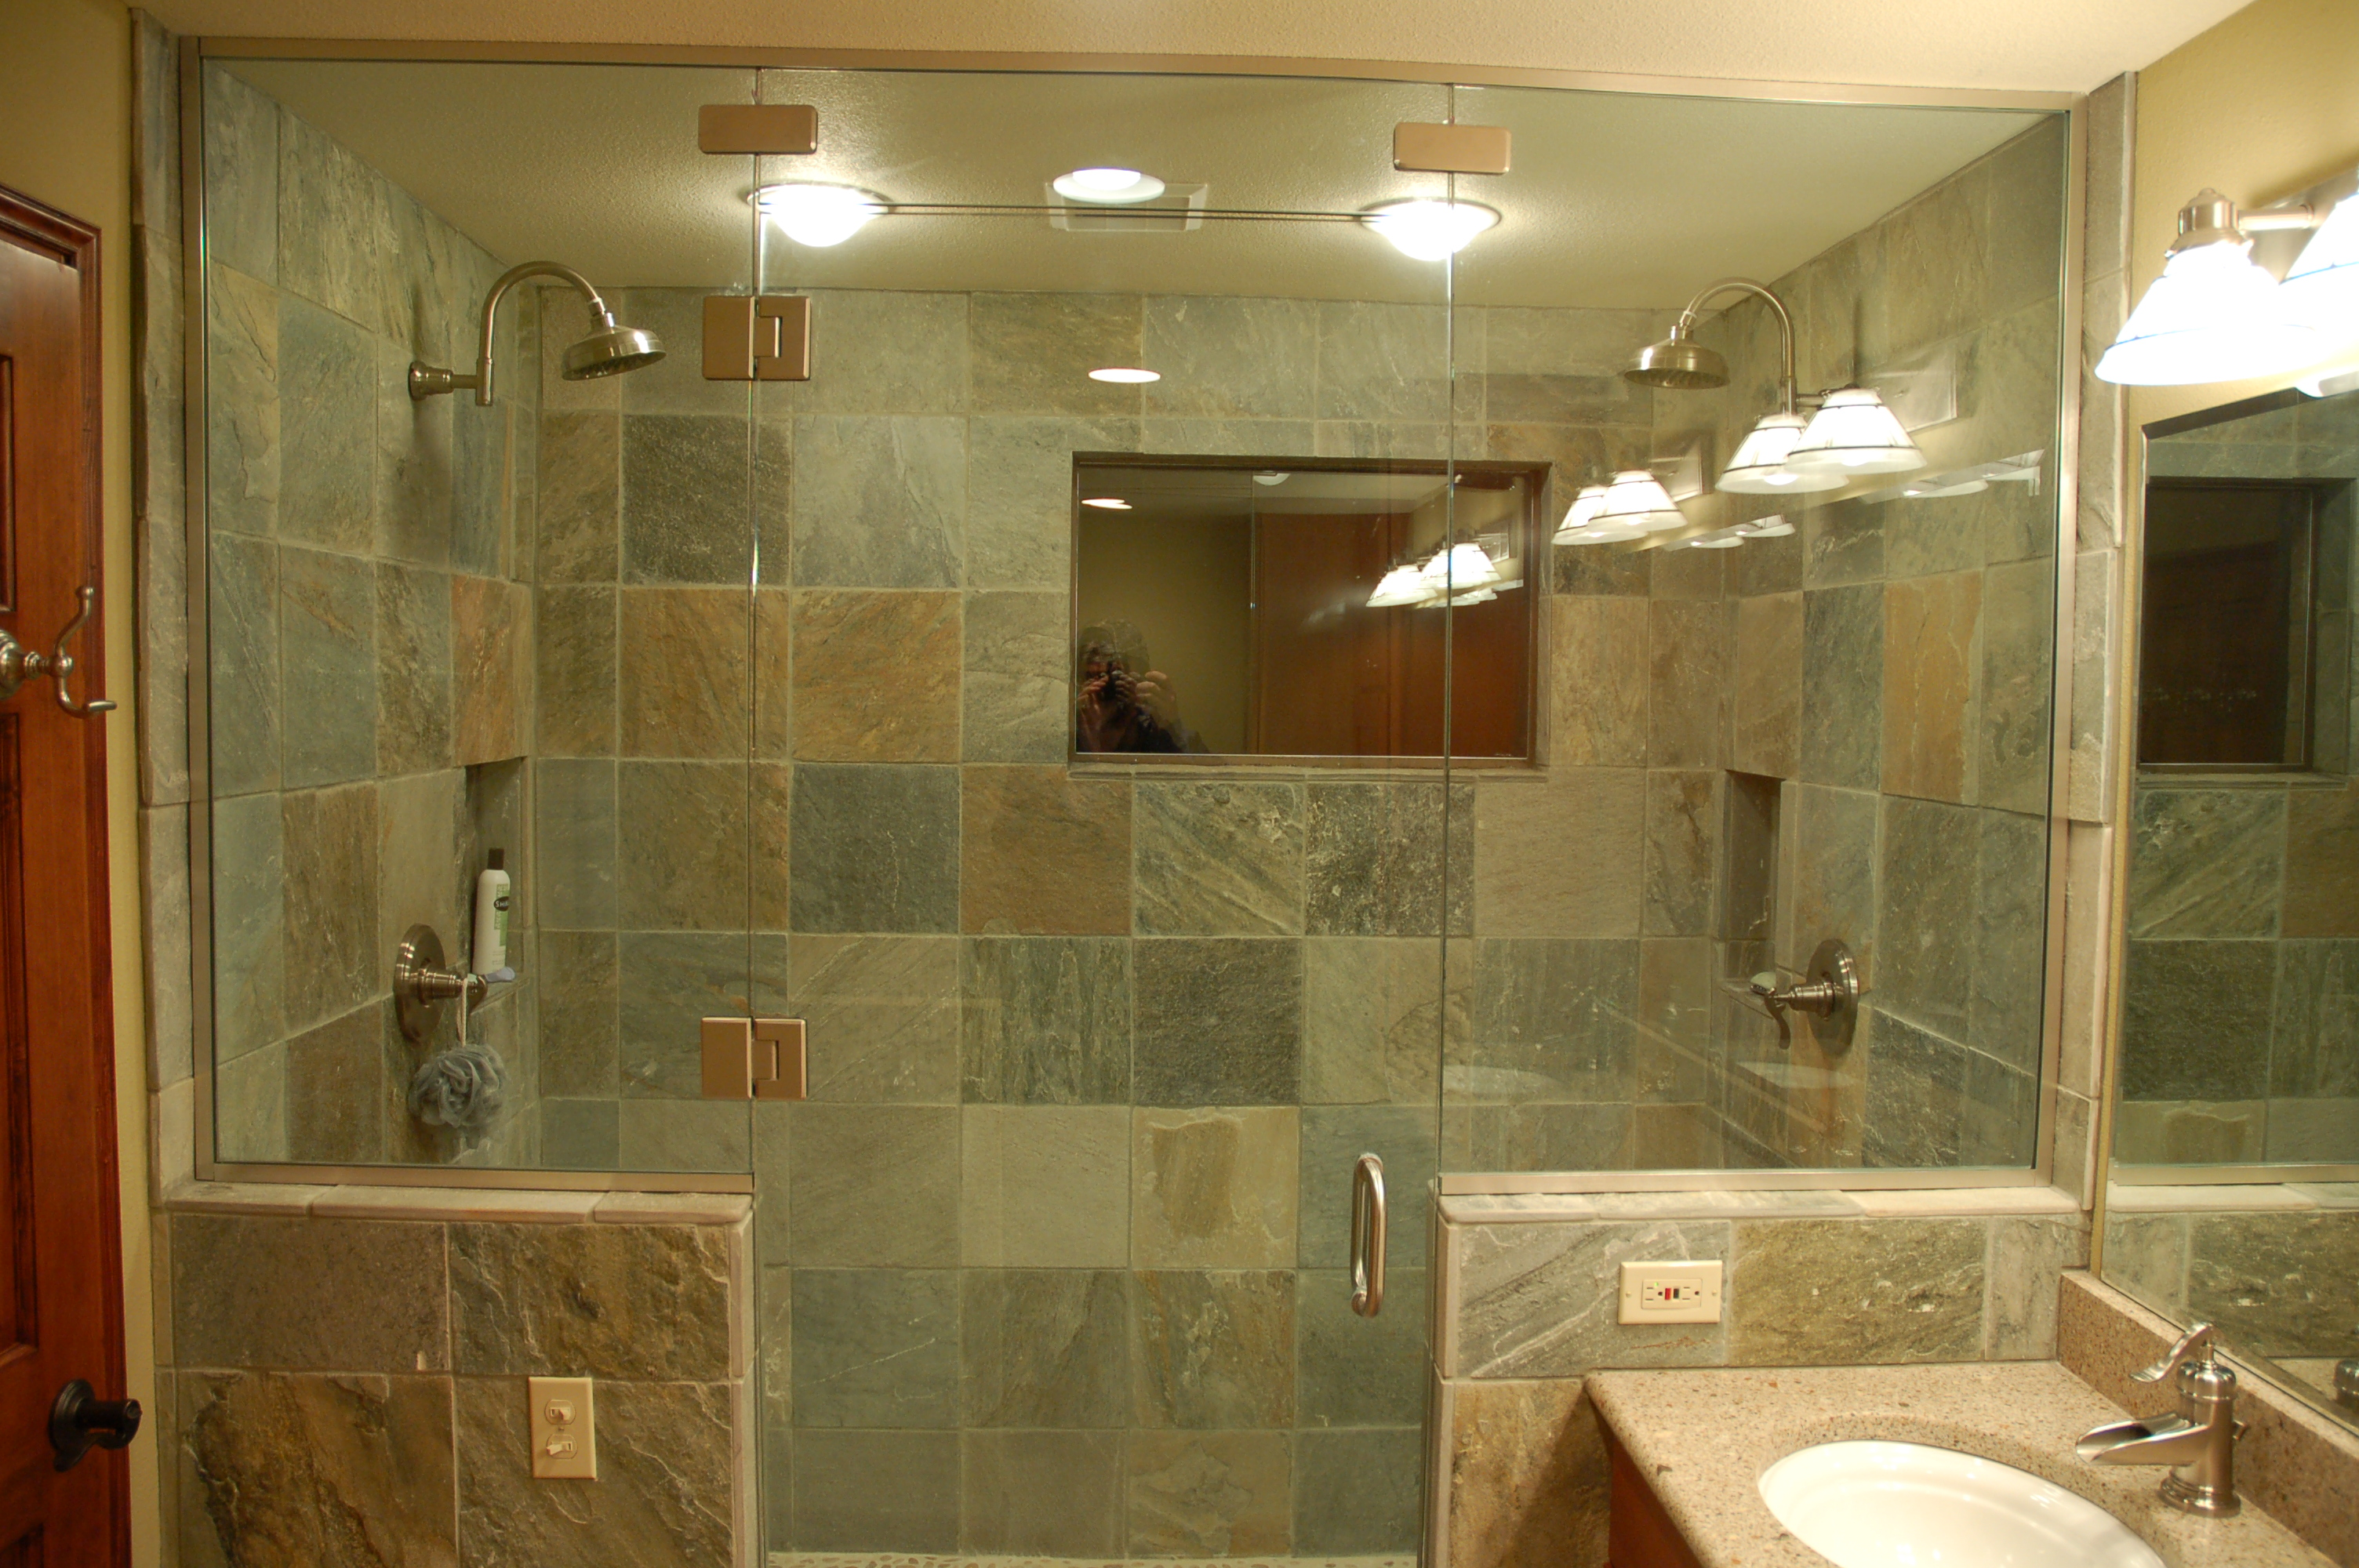 Awesome Bathroom Tiles Contemporary (Image 1 of 10)